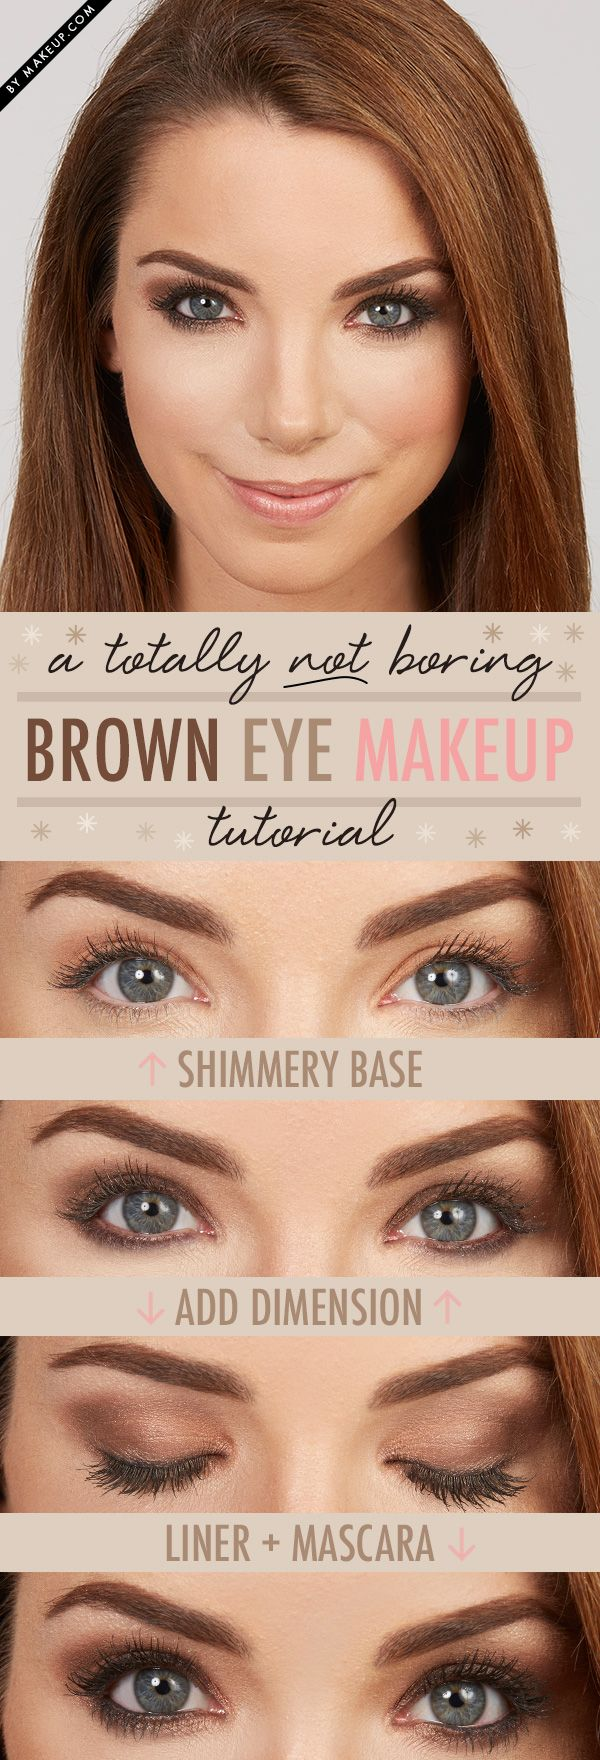 Brown Eye Makeup Tutorial // #beauty #makeup Where to buy Real Techniques brushes makeup -$10 http://youtu.be/rsdio0EoCPQ #realtechniques #realtechniquesbrushes #makeup #makeupbrushes #makeupartist #makeupeye #eyemakeup #makeupeyes